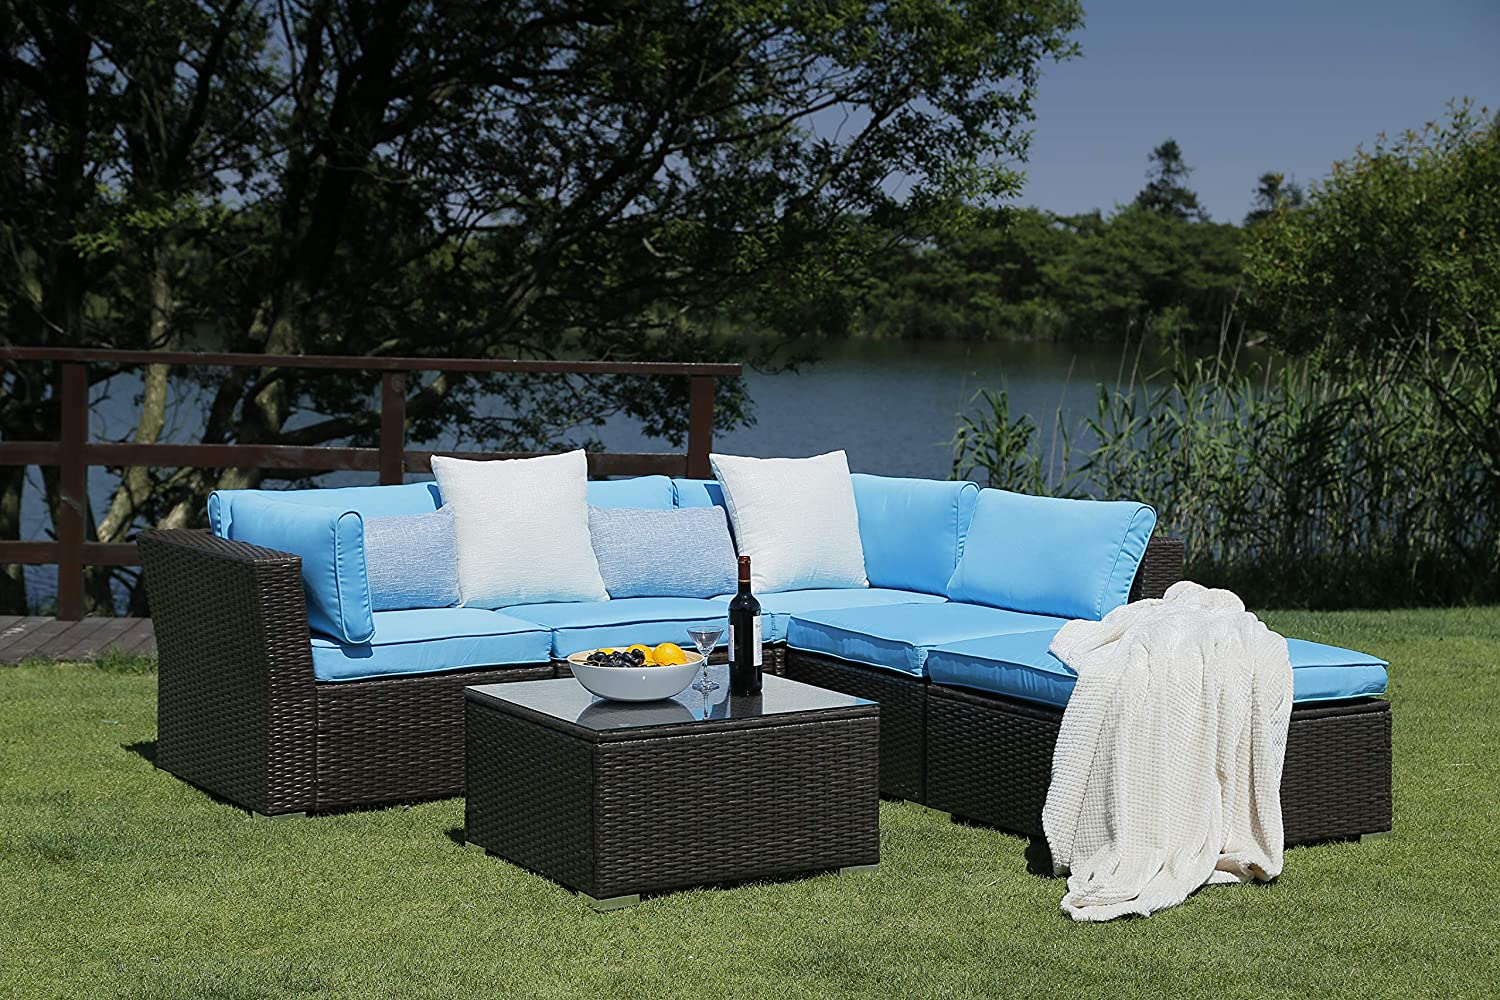 N V Patio Furniture Set 6 Pieces Modern Outdoor Furniture Sofas with Seat Cushions Pillows Tea Table Glass Top Lumbar Pad Blanket Fashion Couch Sets for Garden Backyard Pool Blue